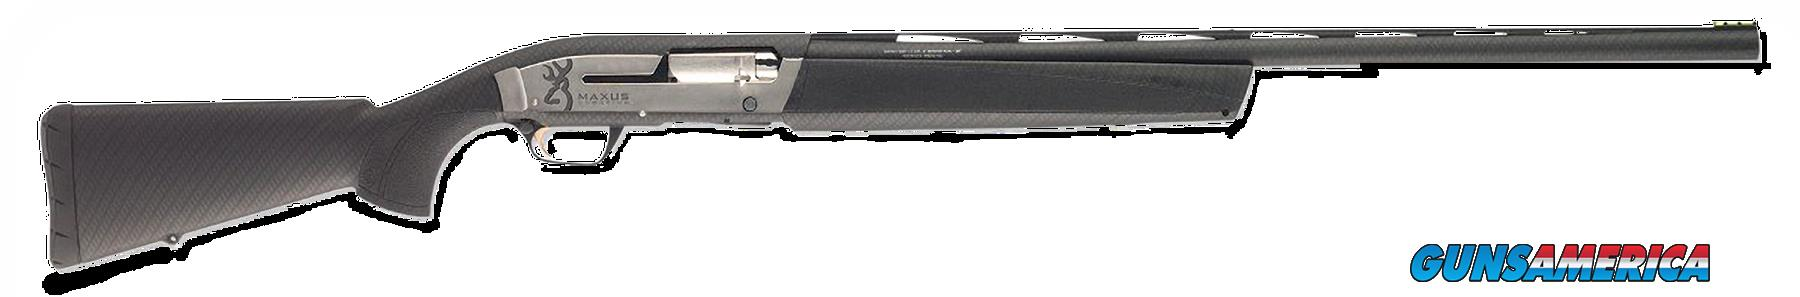 "Browning 011609303 Maxus Sporting Semi-Automatic 12 Gauge 30"" 3"" Carbon Fiber Synthetic Stk Aluminum  Guns > Shotguns > Browning Shotguns > Autoloaders > Hunting"